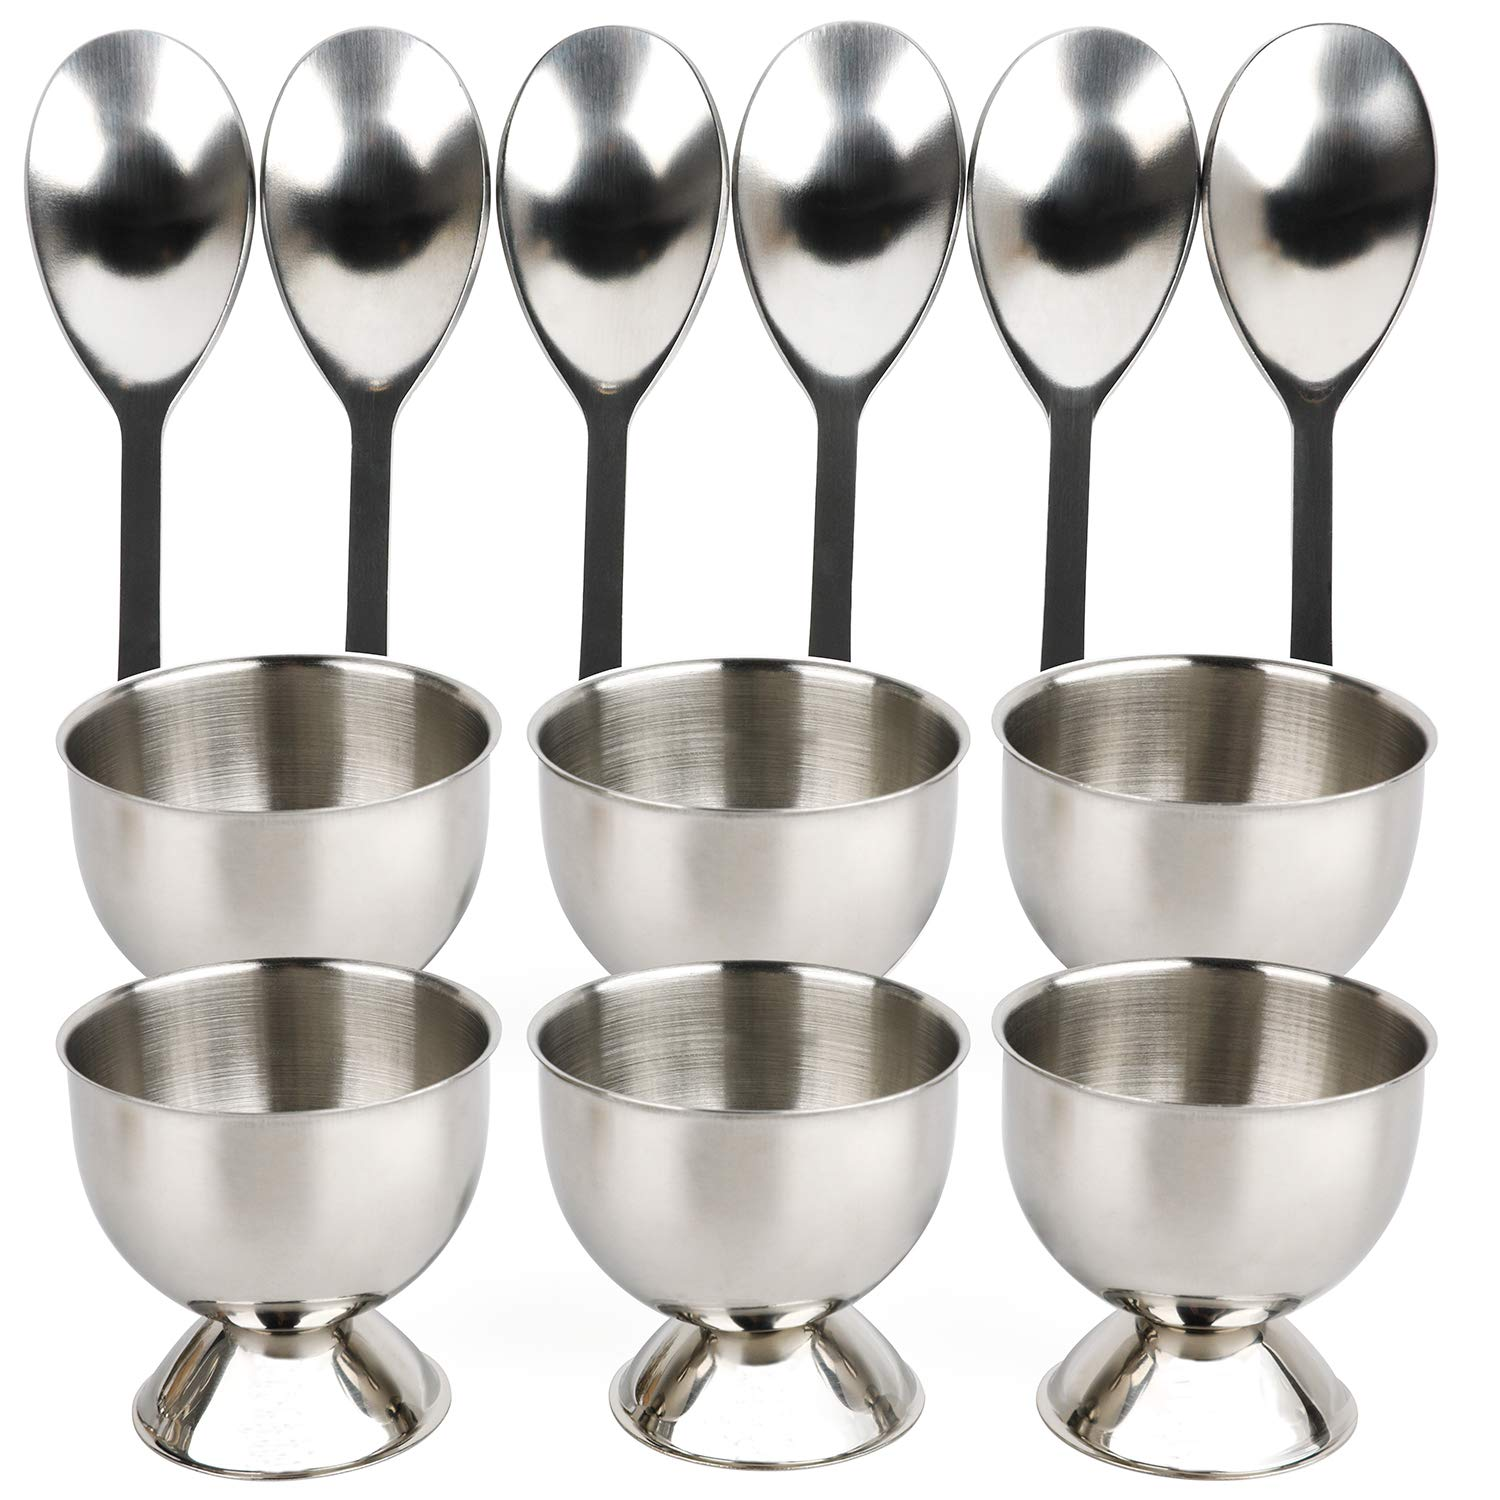 Egg Cups for Soft Boiled Eggs Stainless Steel Set 12 Include 6 Egg Cup Holders and 6 Egg Spoons